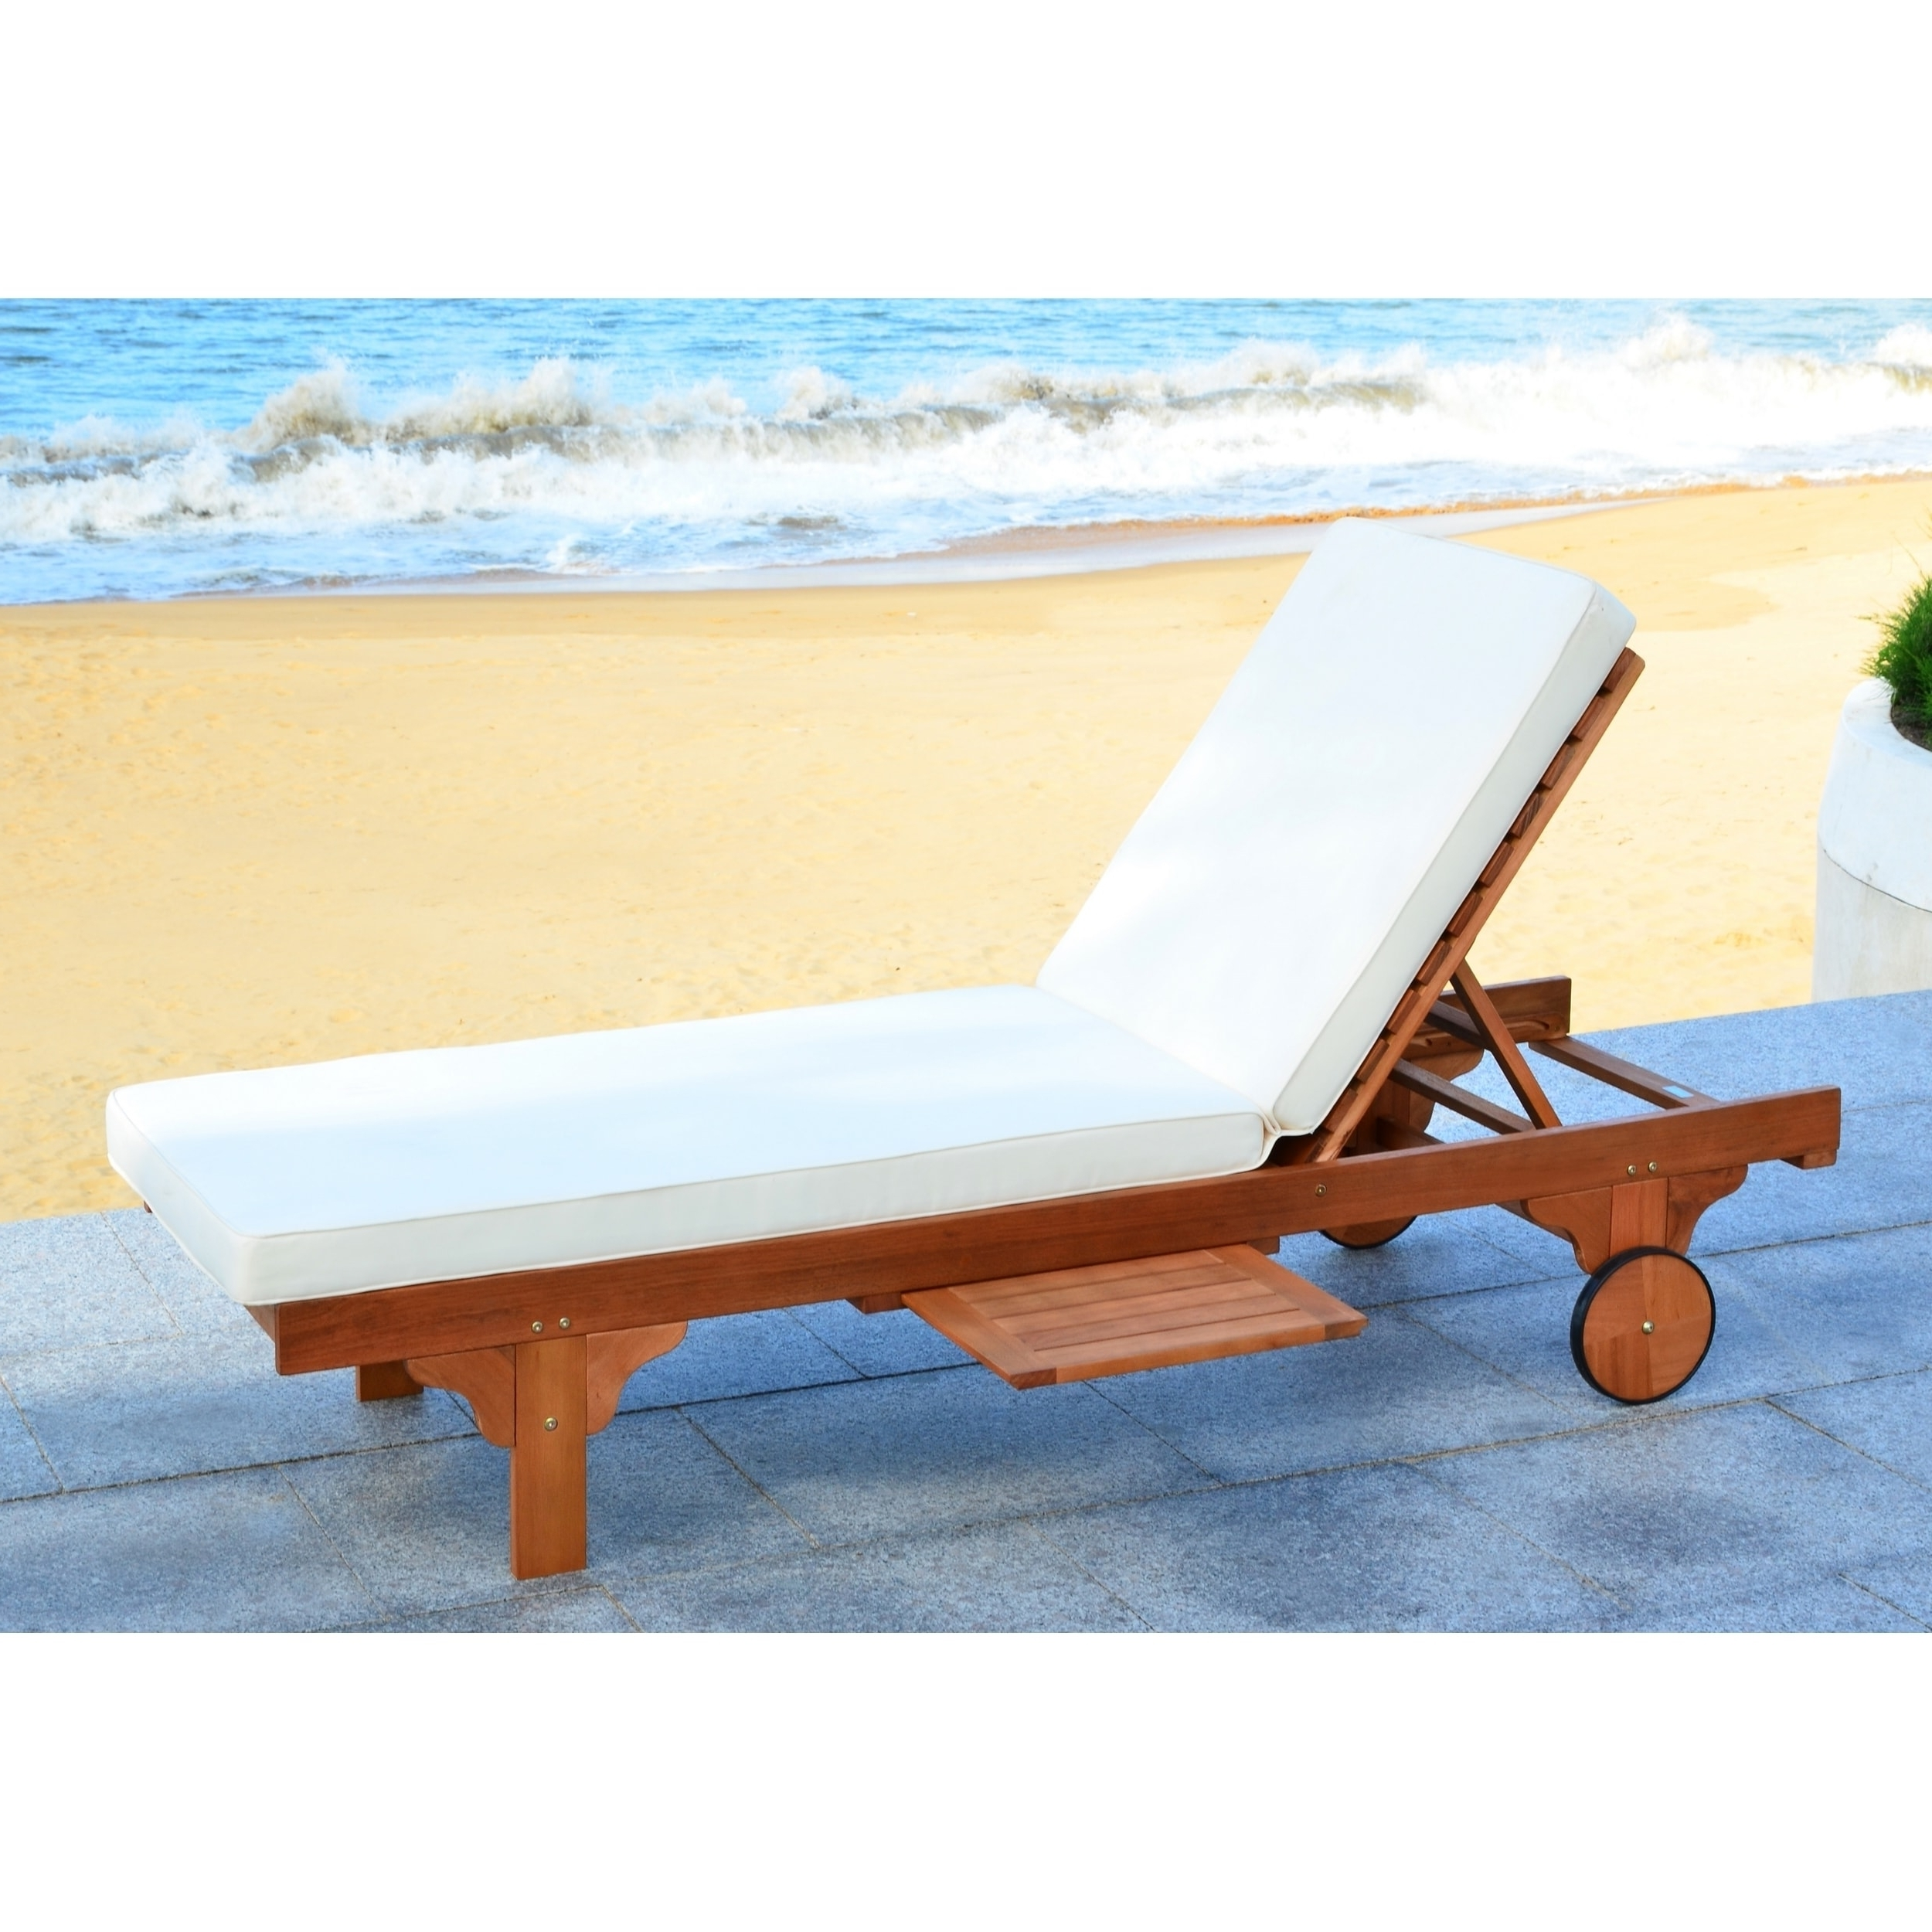 Safavieh Outdoor Living Newport Brown/ Beige Adjustable Chaise With Regard To Current Newport Chaise Lounge Chairs (View 12 of 15)